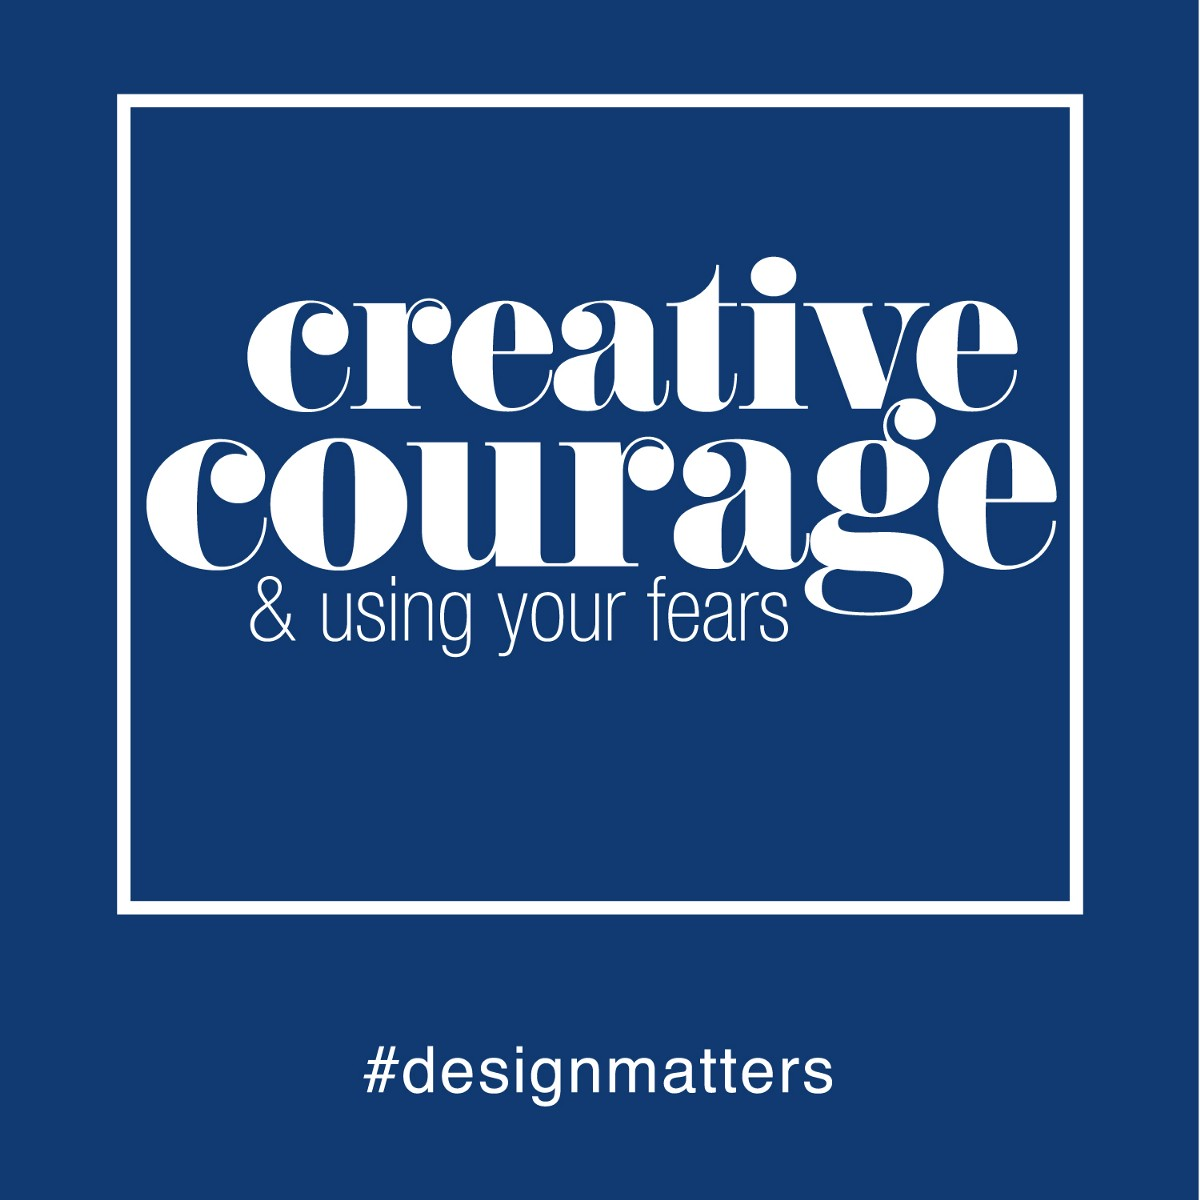 How to Have Creative Courage & Use Your Fears